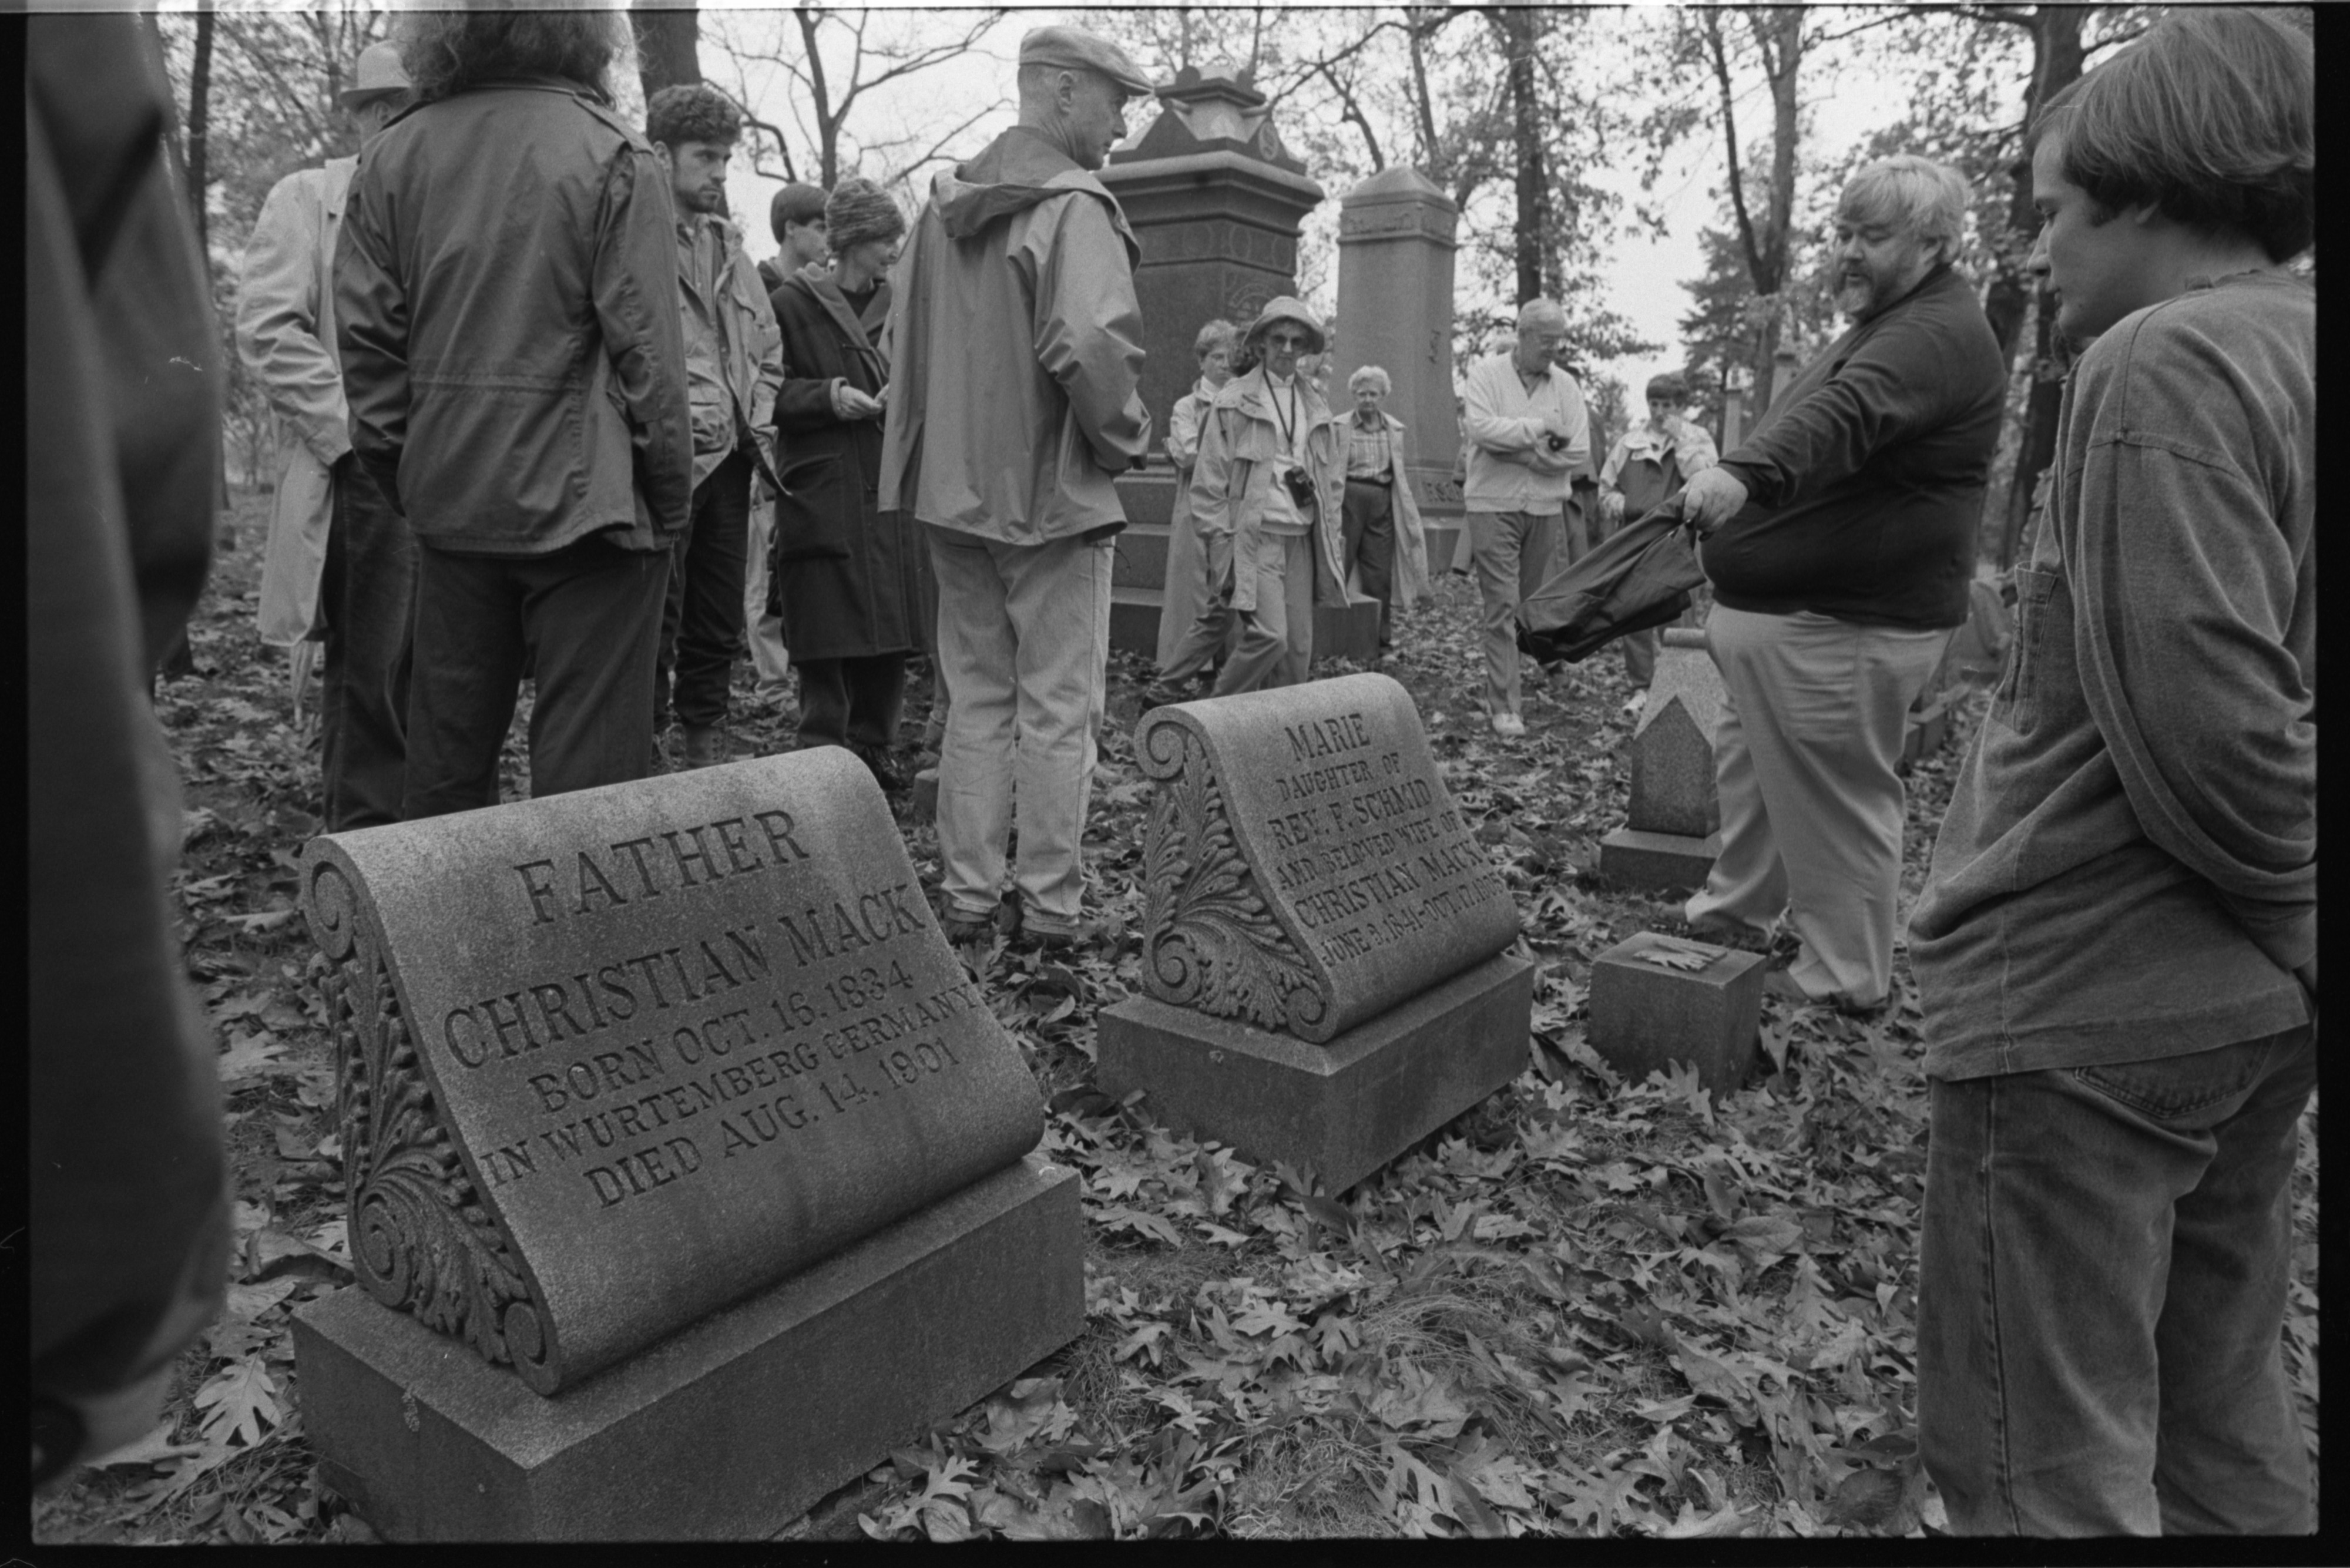 Wystan Stevens, Historian, Conducts A Tour Of Forest Hill Cemetery, October 26, 1991 image